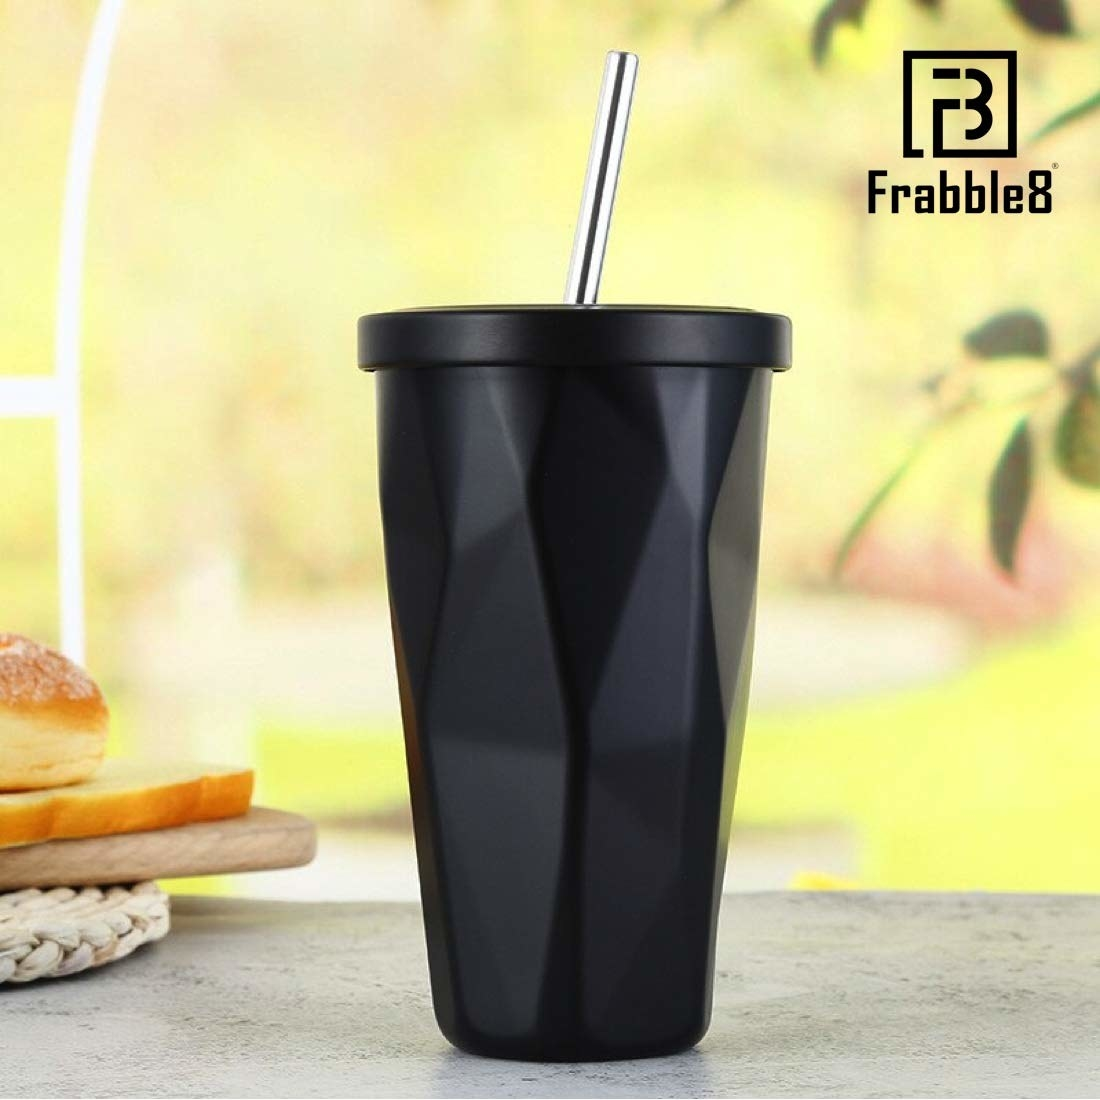 A black tumbler with a straw on a table